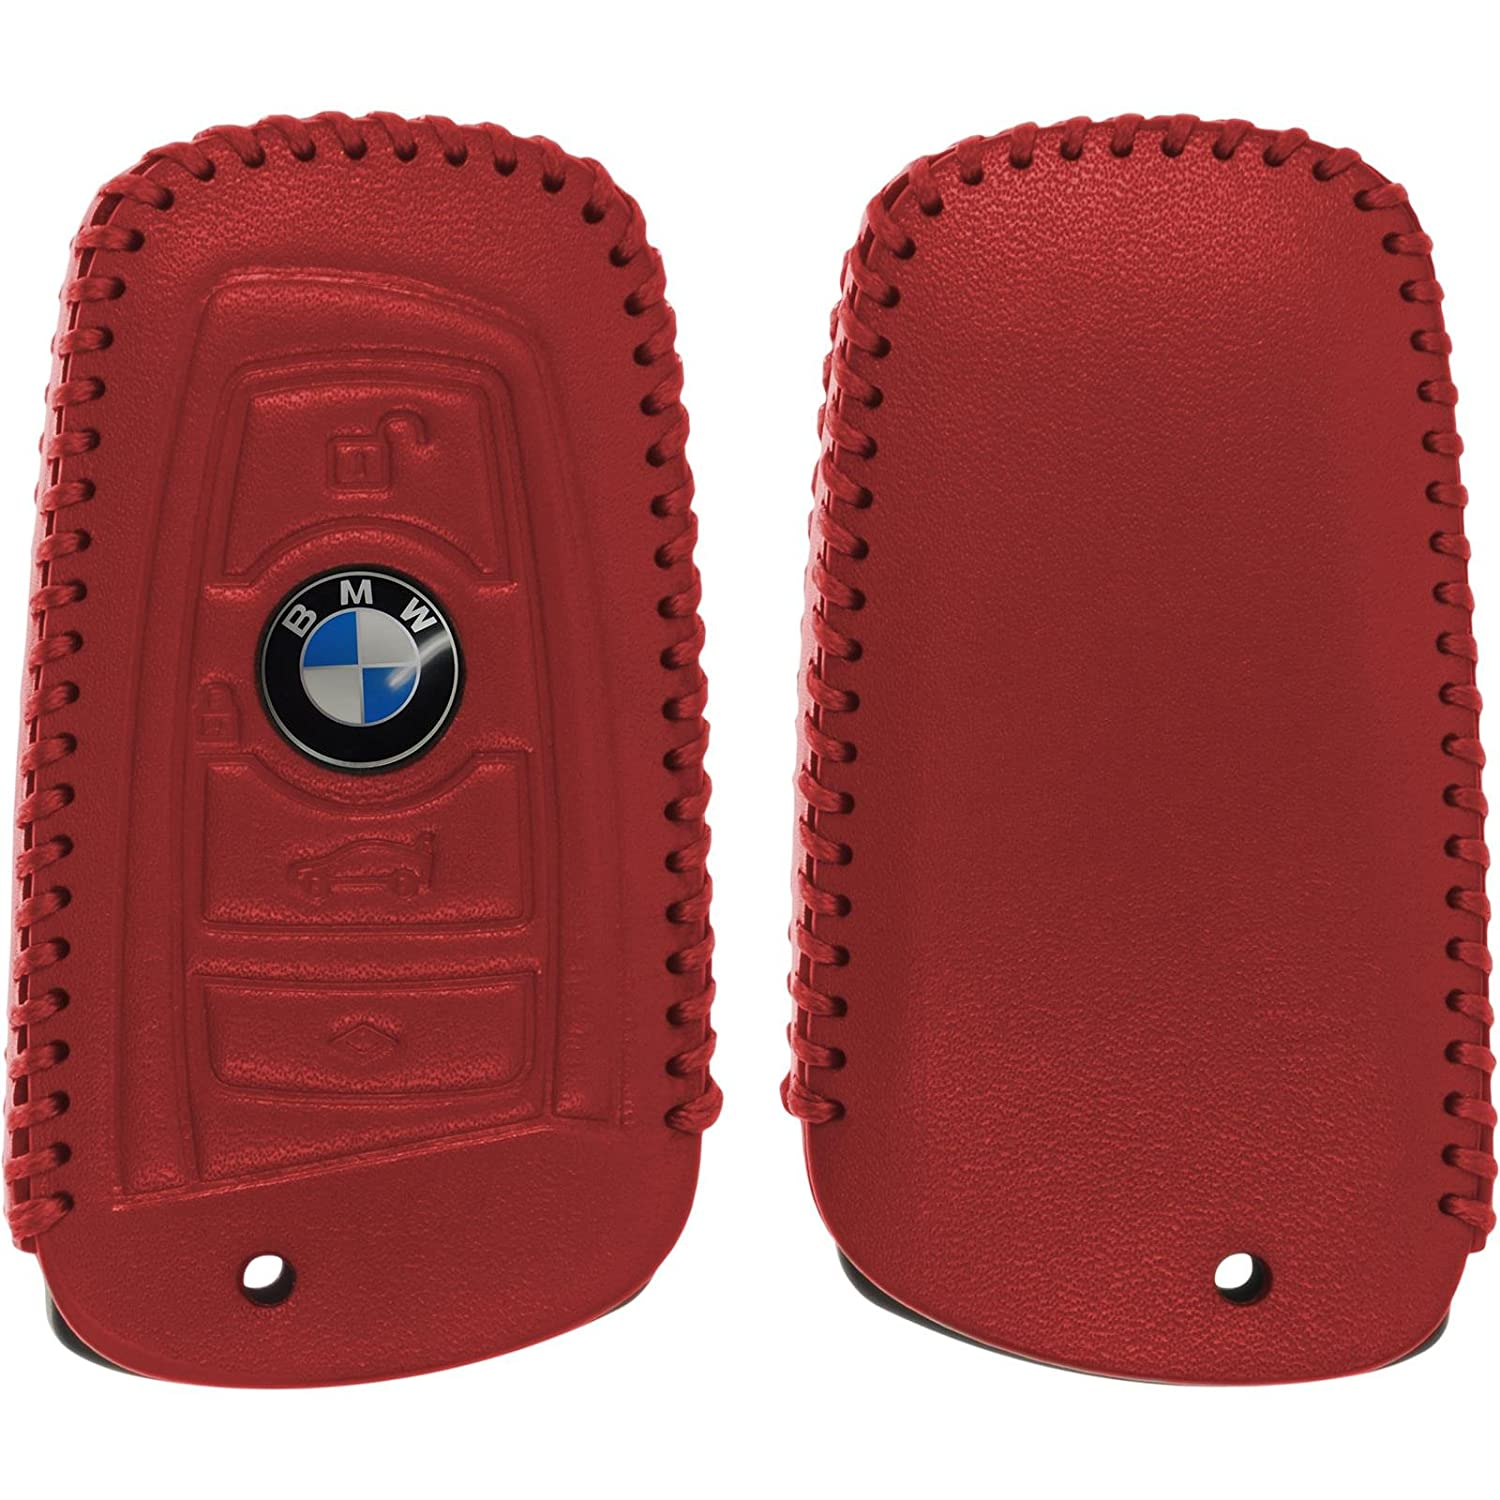 PhoneNatic car key Genuine leather stitched case for 4-button remote for BMW 3er E90 5er F10 und 7er F01 in brown 4-button